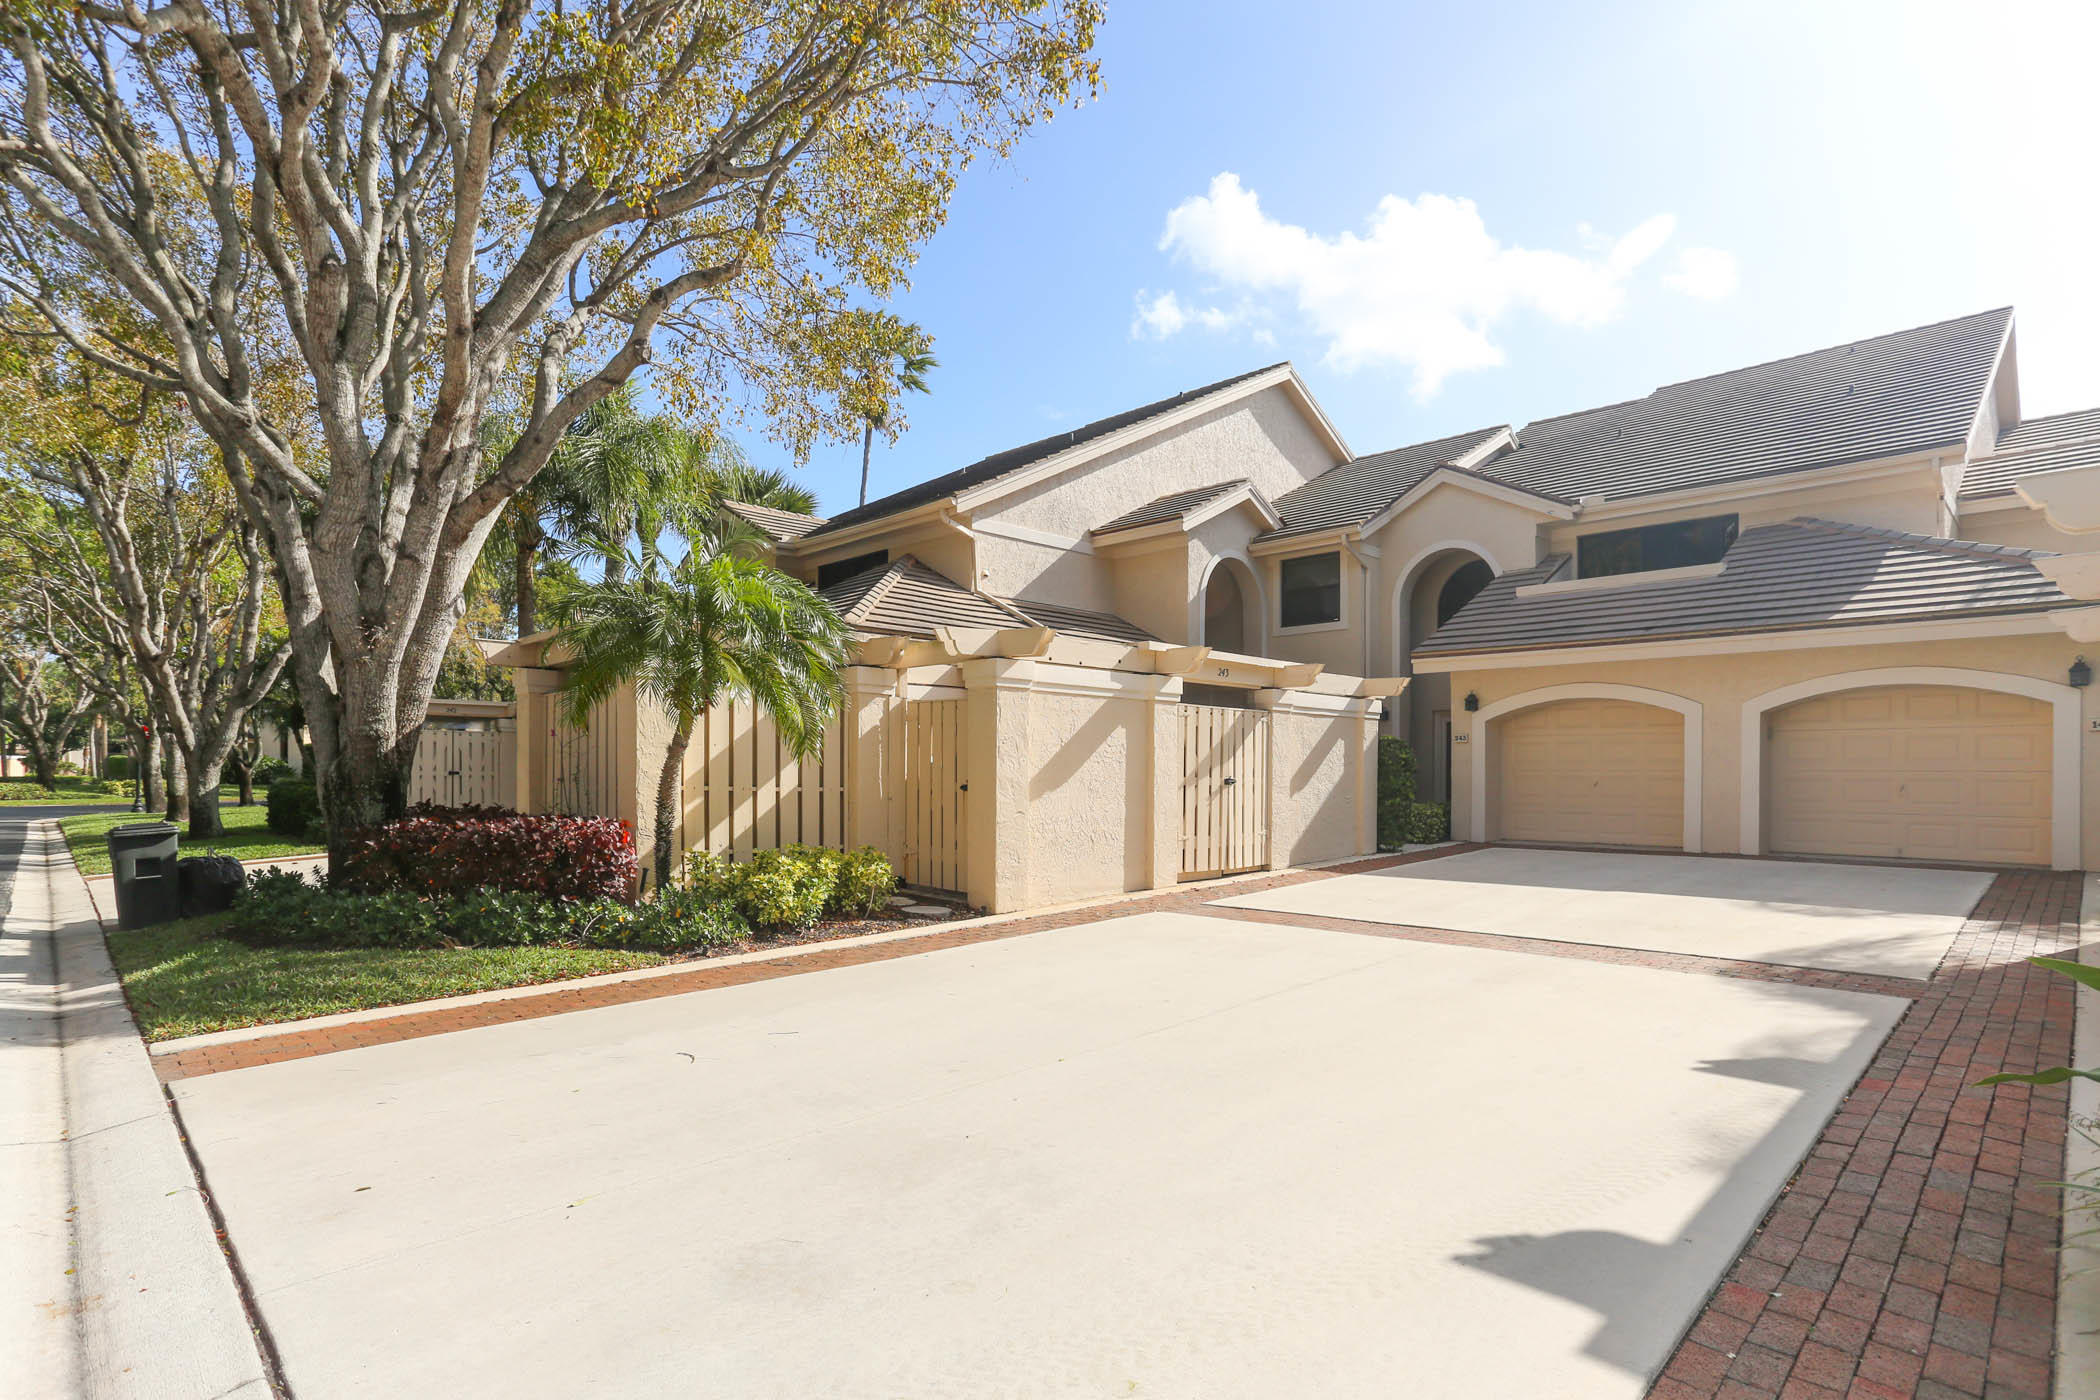 New Home for sale at 16150 Bay Drive in Jupiter